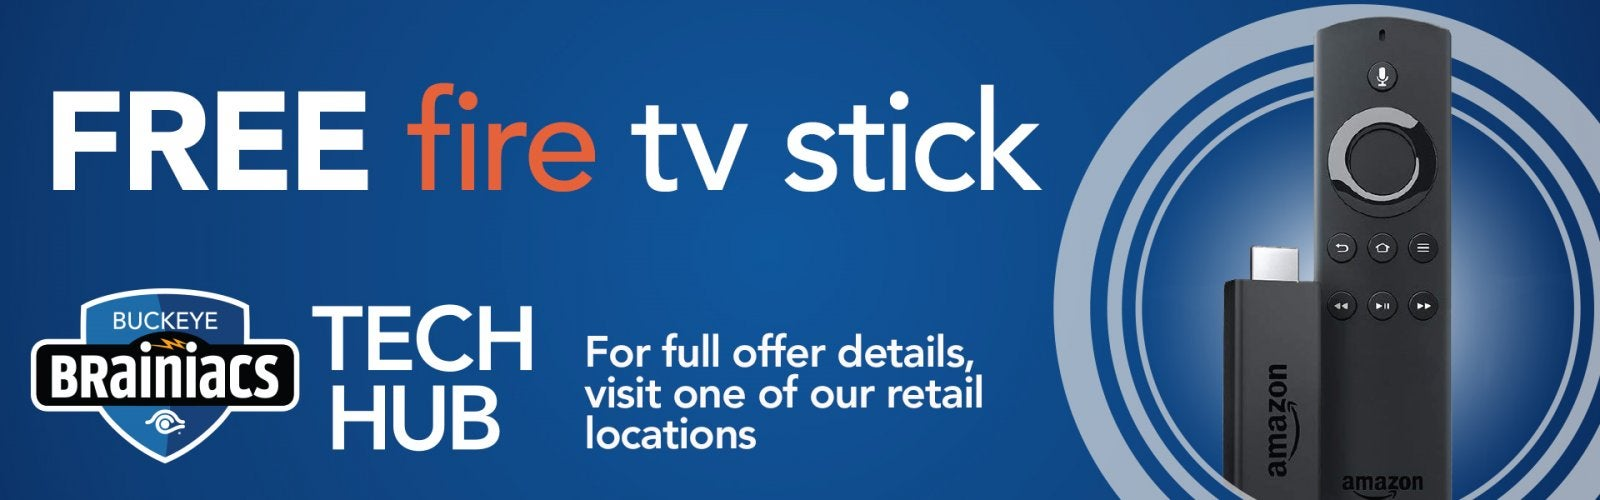 Internet, Cable TV, Fire Stick, retail stores